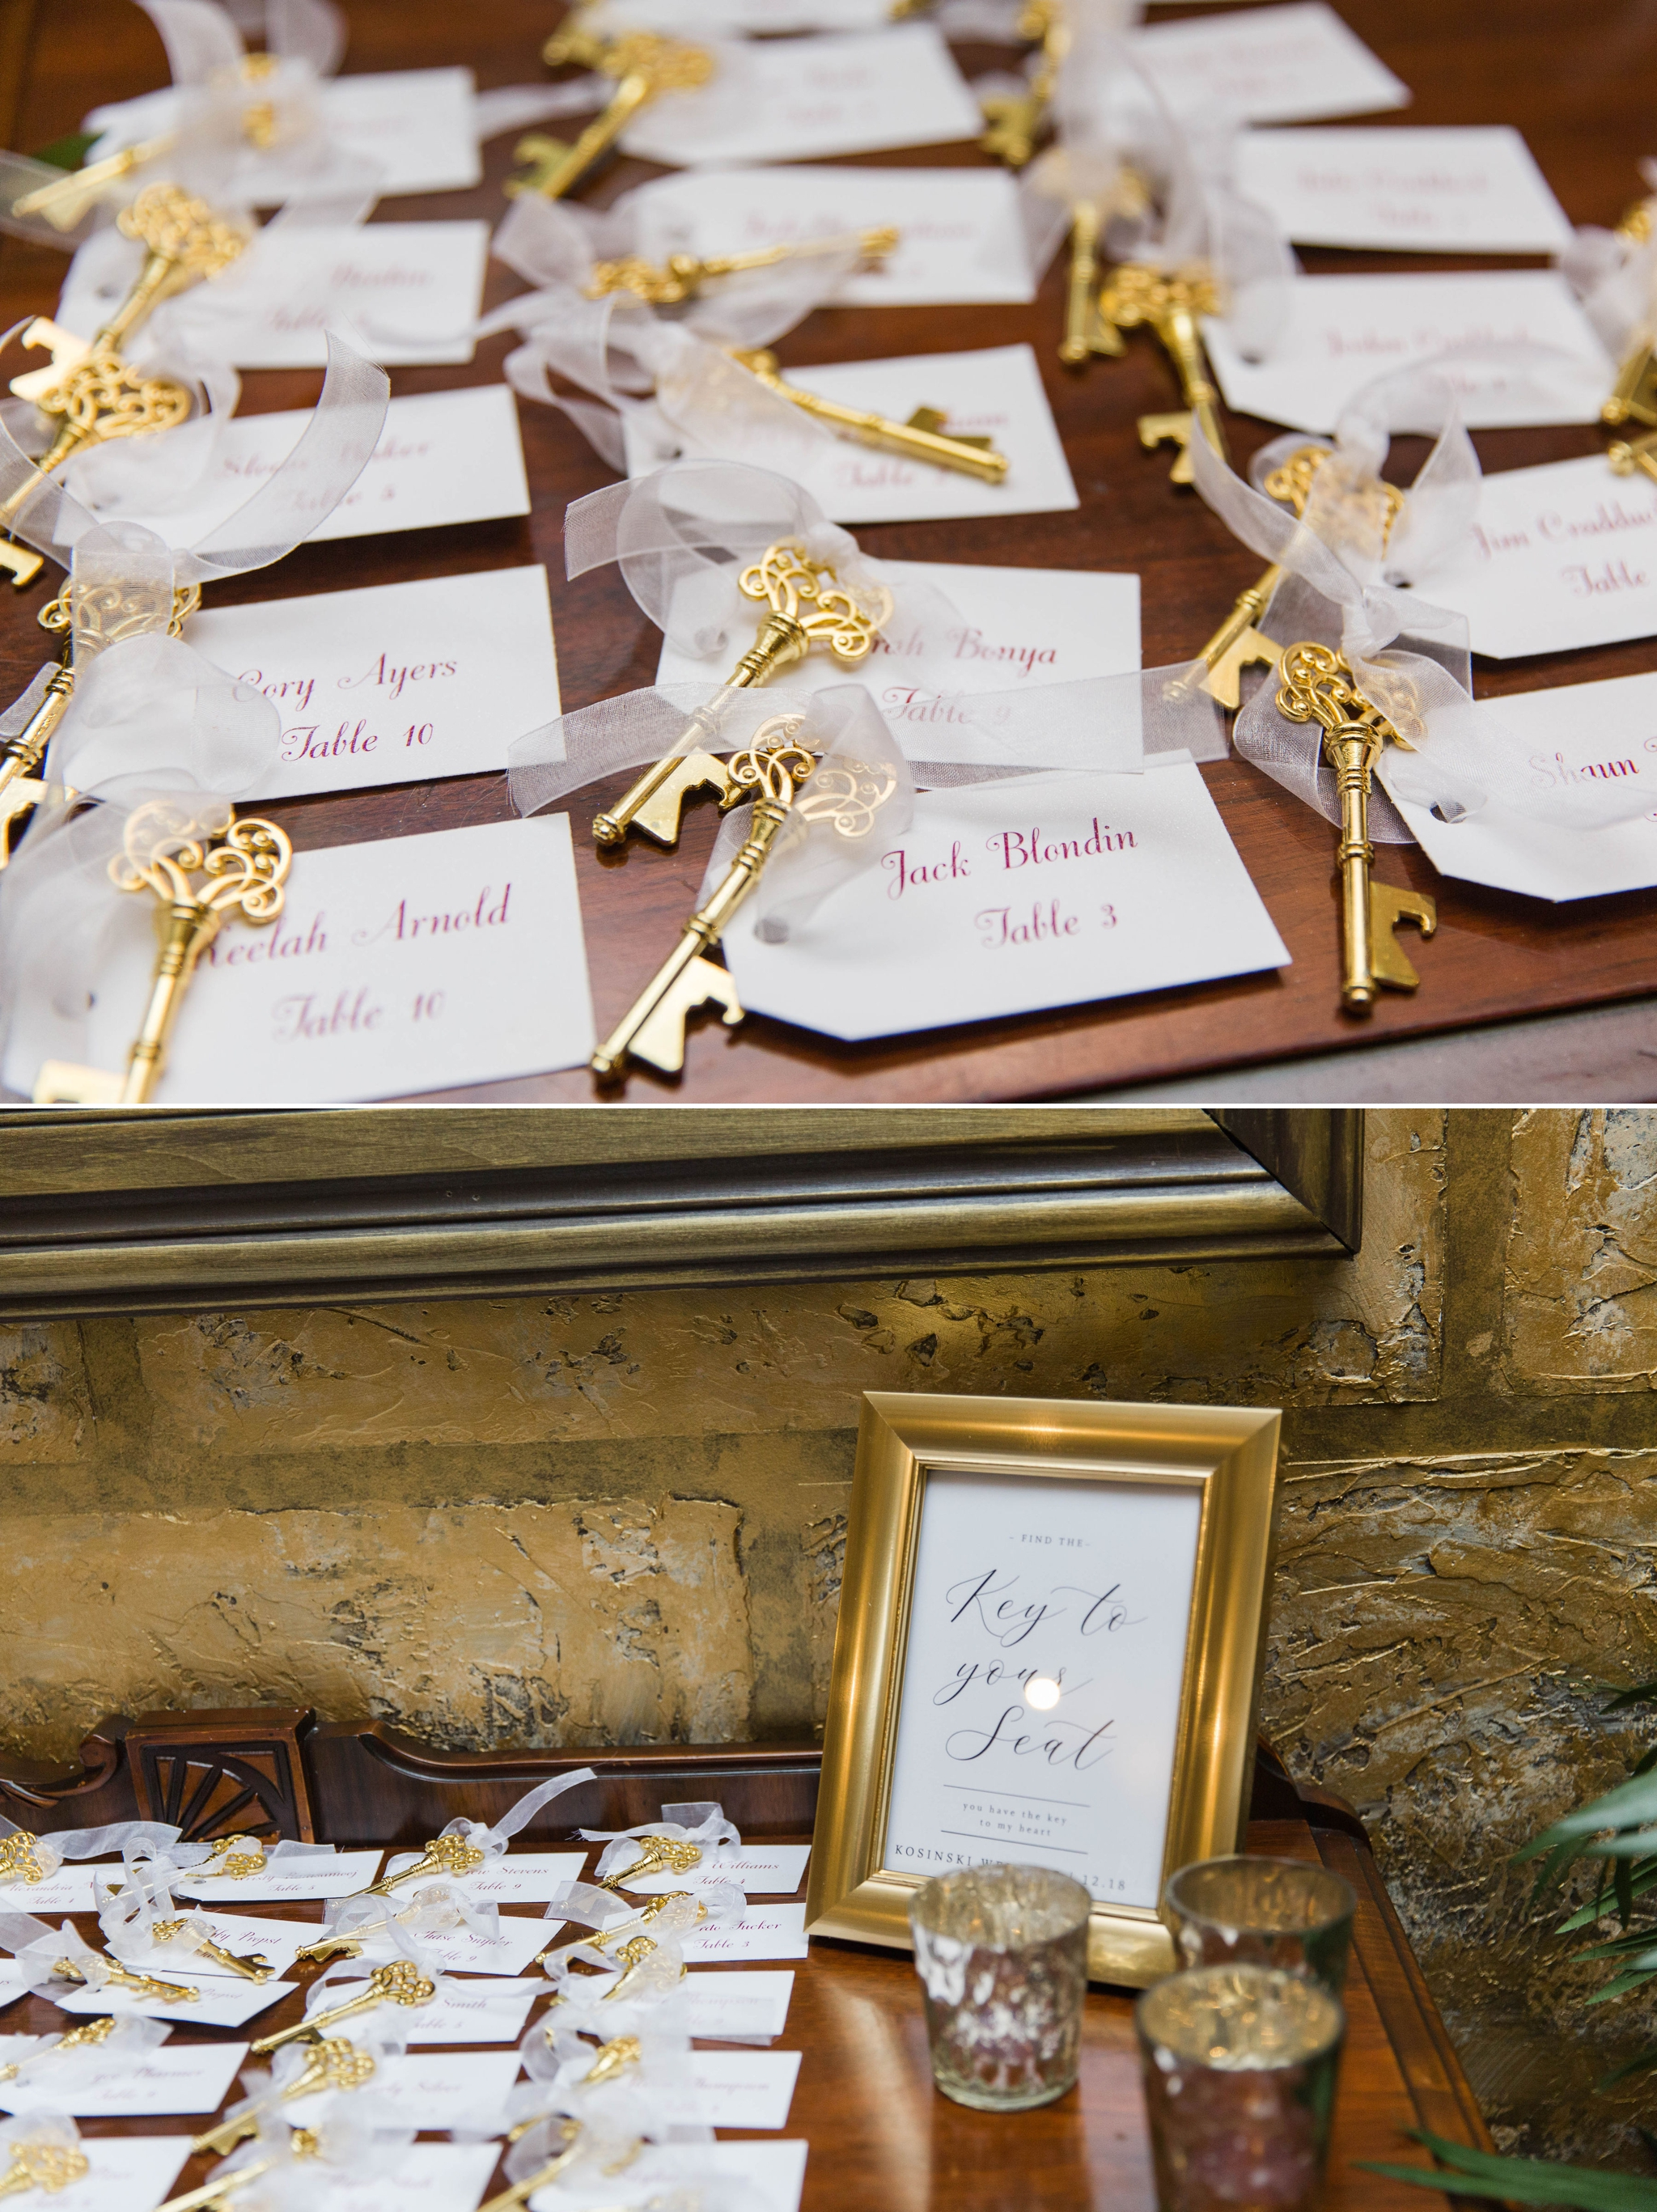 Keys as Place cards Reception Details - Honolulu Oahu Hawaii Wedding Photographer